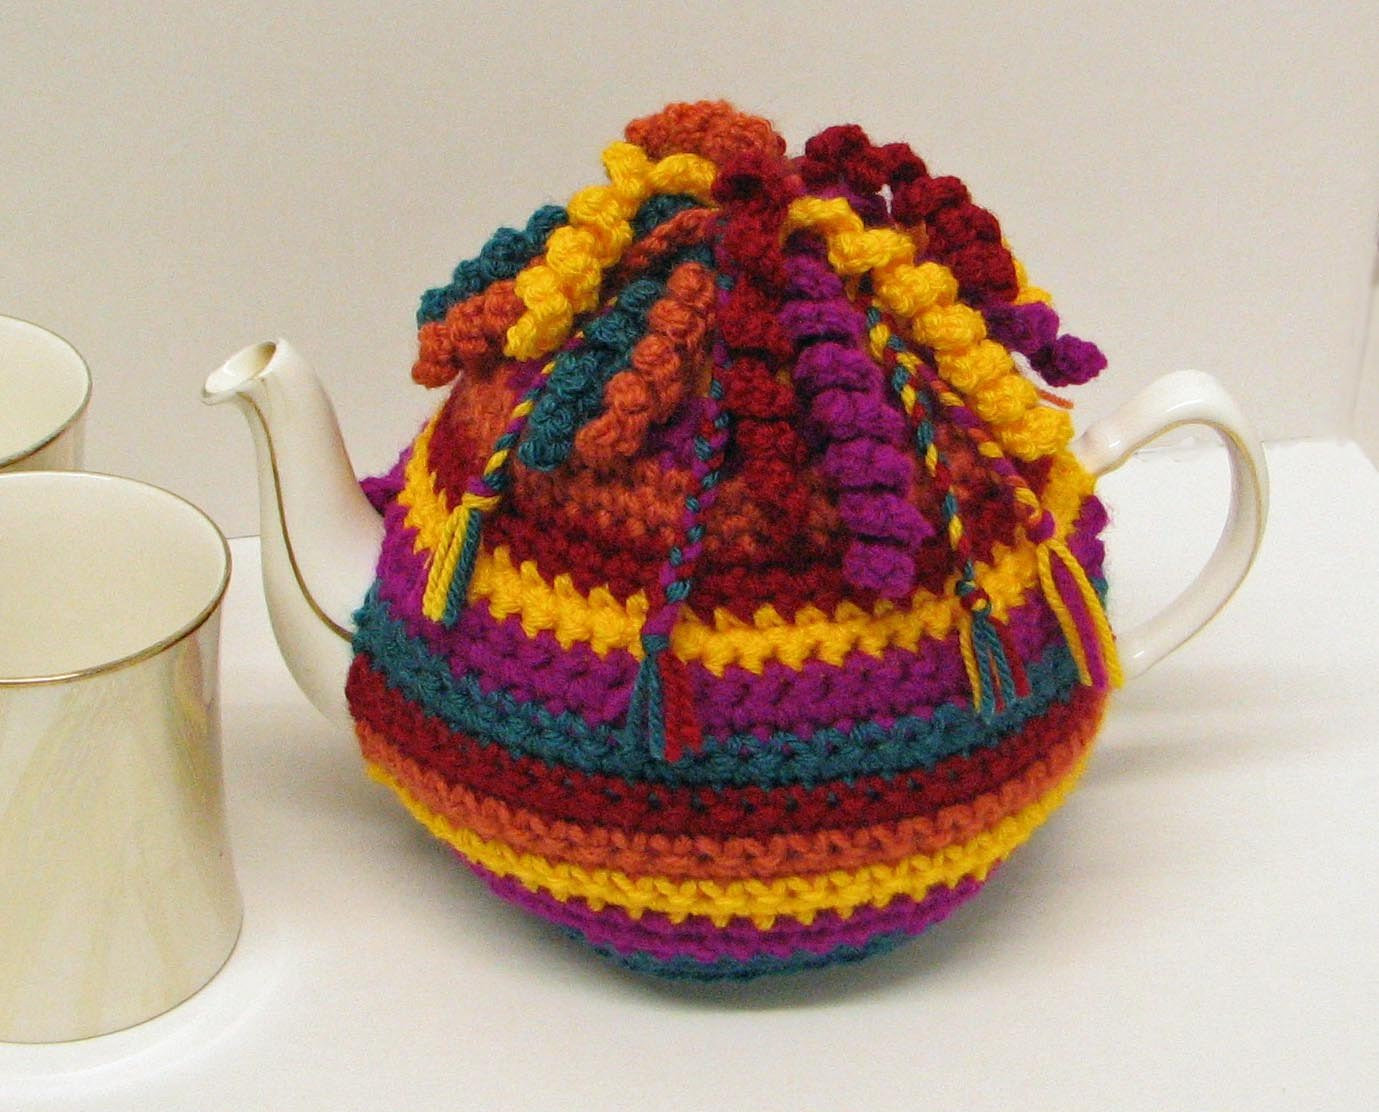 Tea Cozy Pattern Best Of Crochet Pattern for Tea Cosy Cozy Trimmed with Spirals and Of Awesome 46 Photos Tea Cozy Pattern